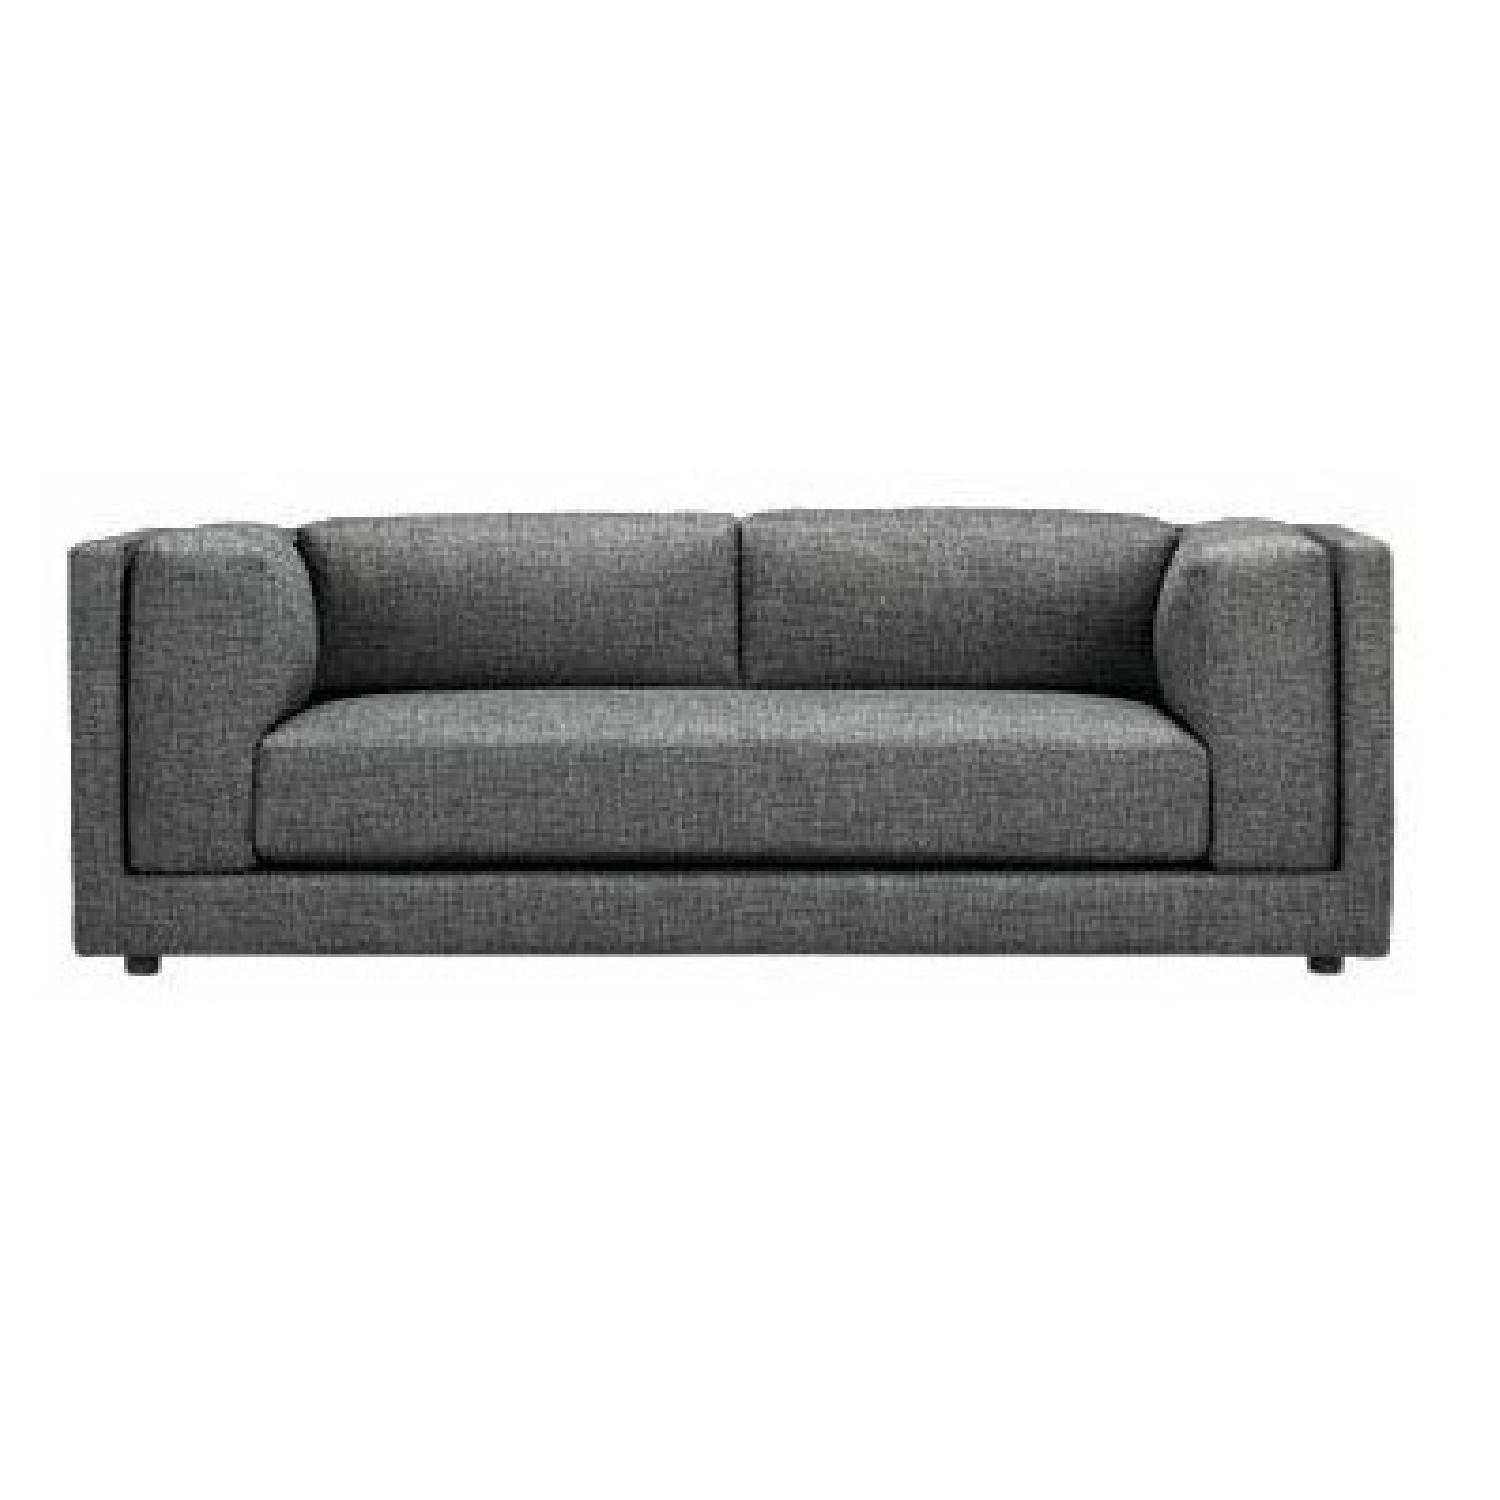 cb2 piazza sofa review rv sleepers for sale 2018 latest sofas ideas